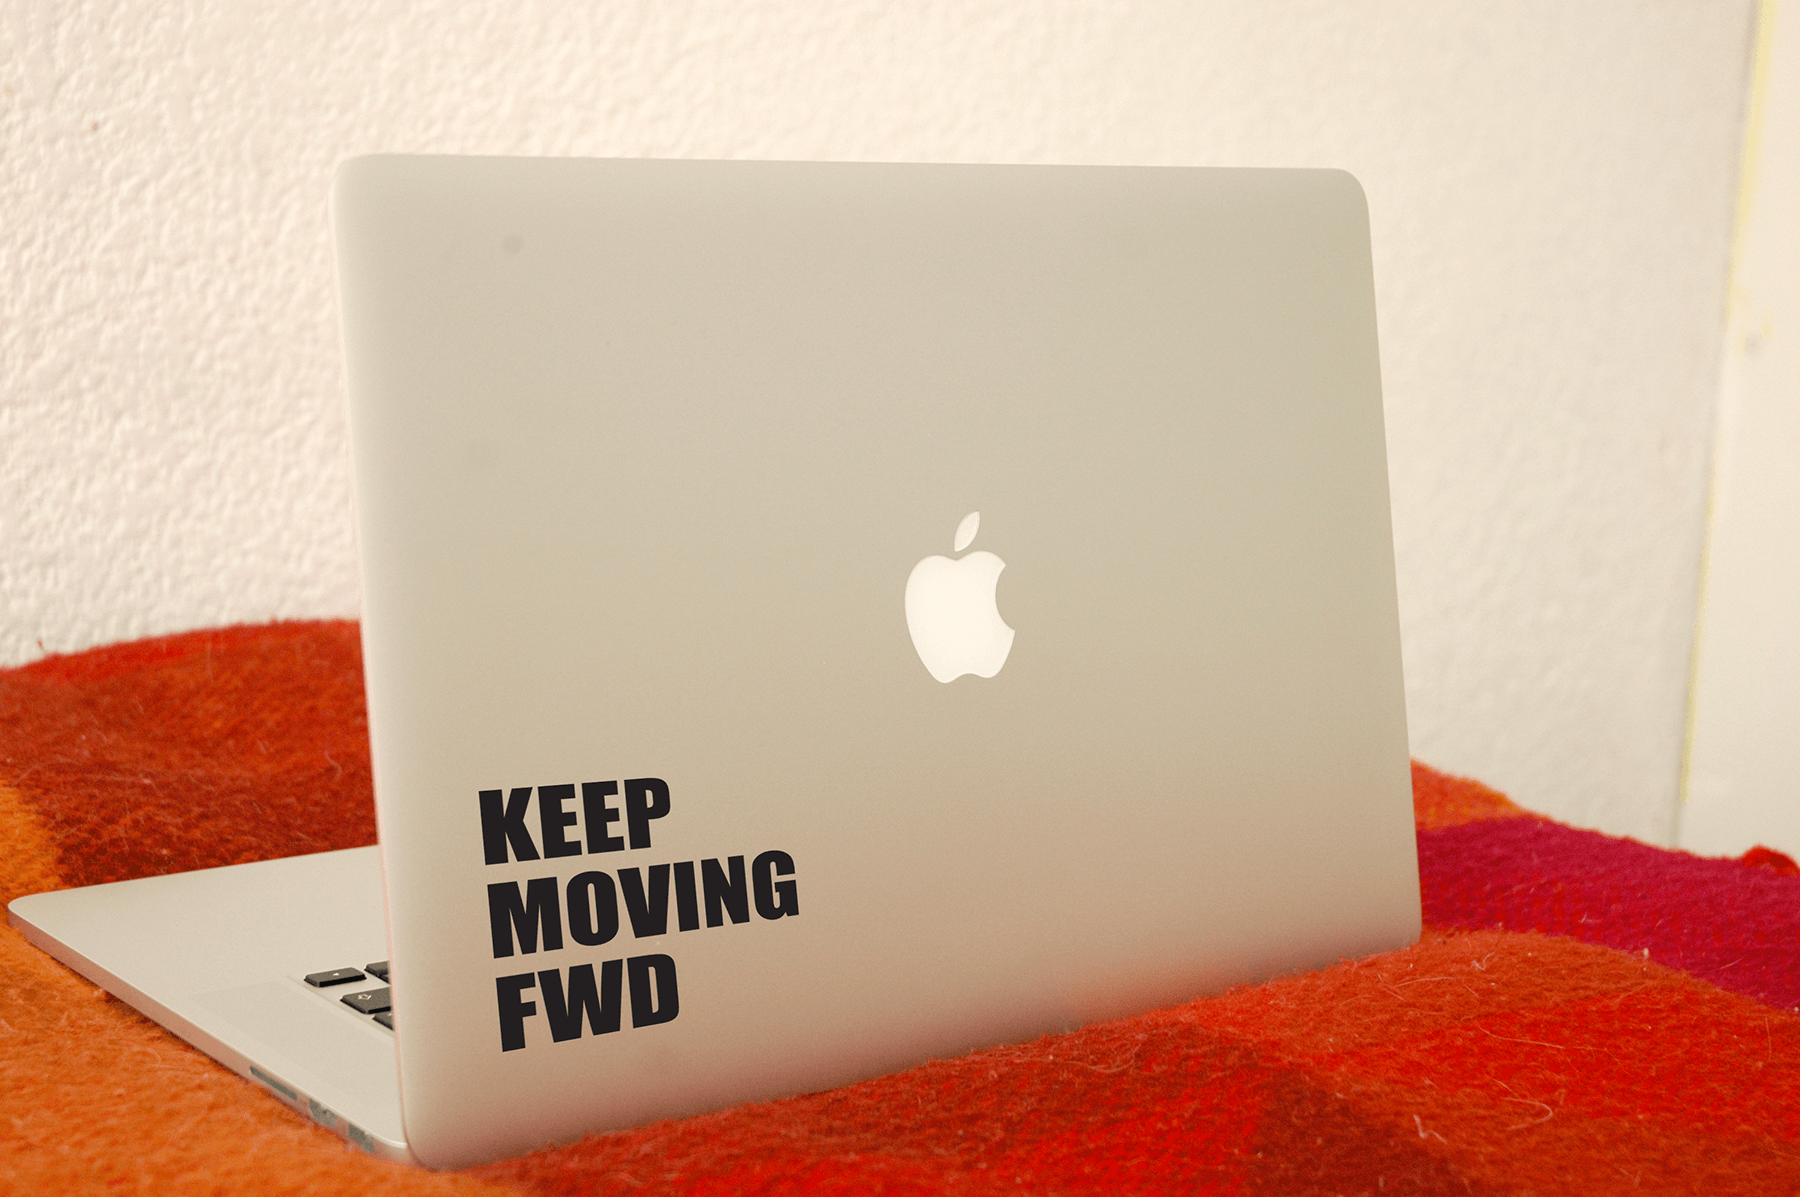 Keep Moving Fwd - Somhi